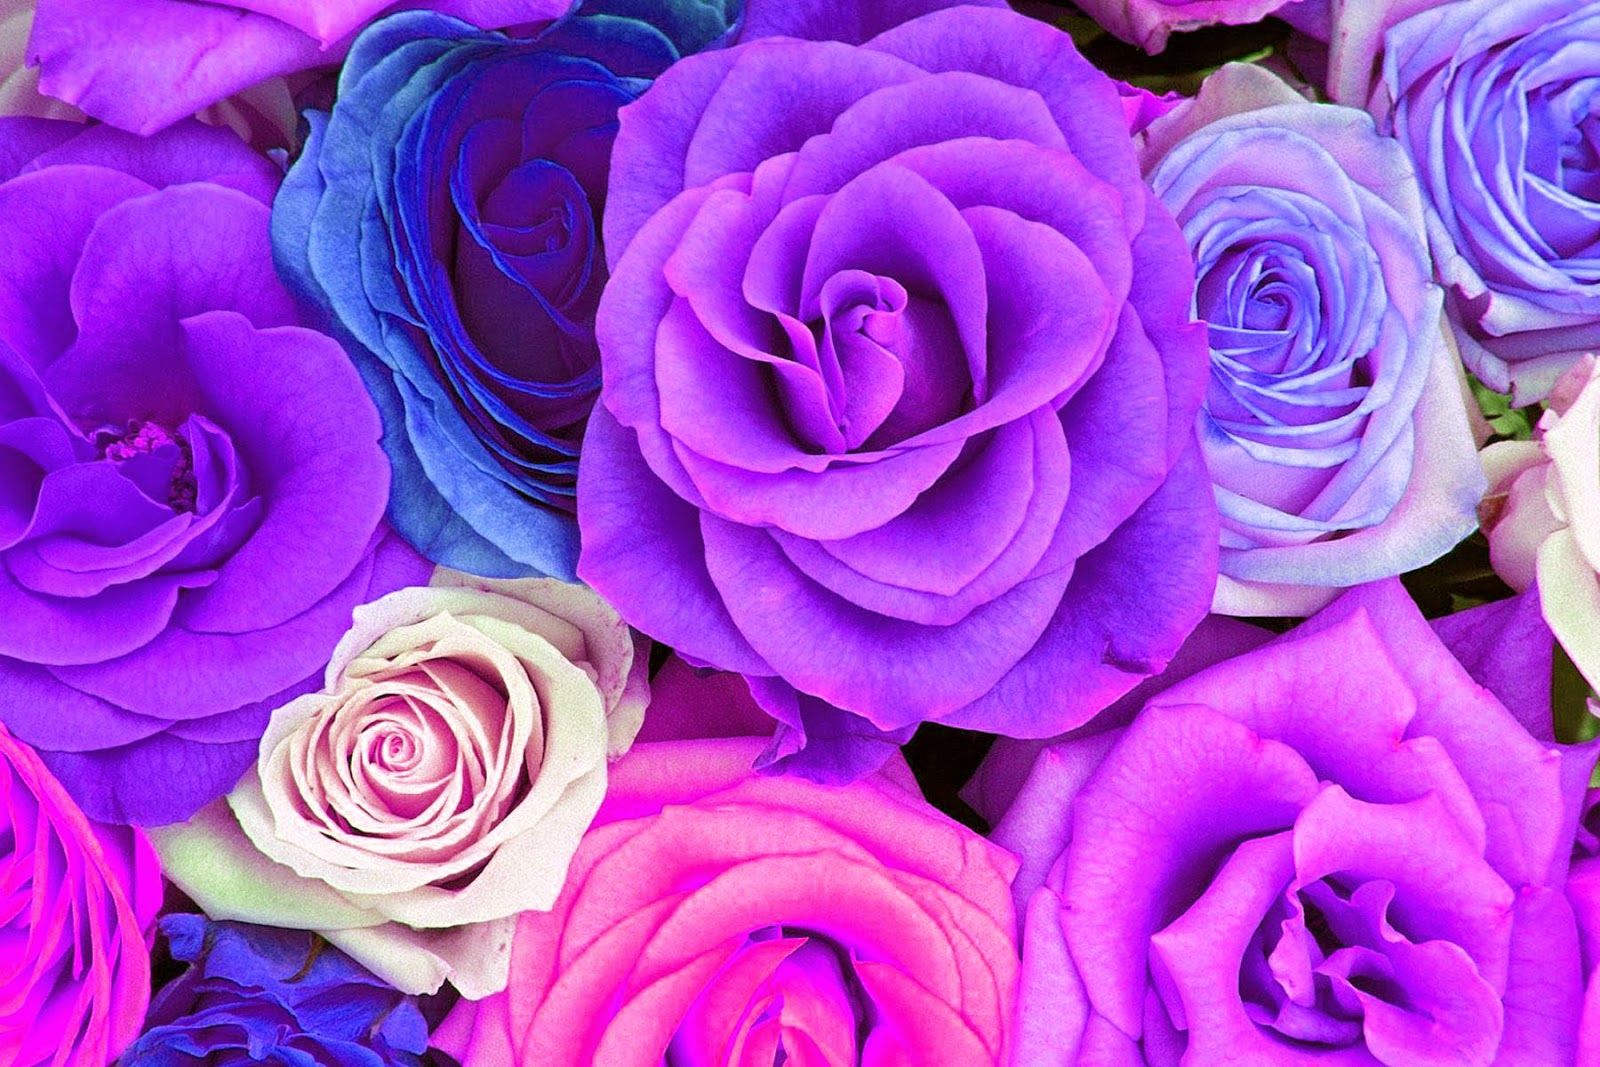 Watercolor Roses Wallpaper Freebies!